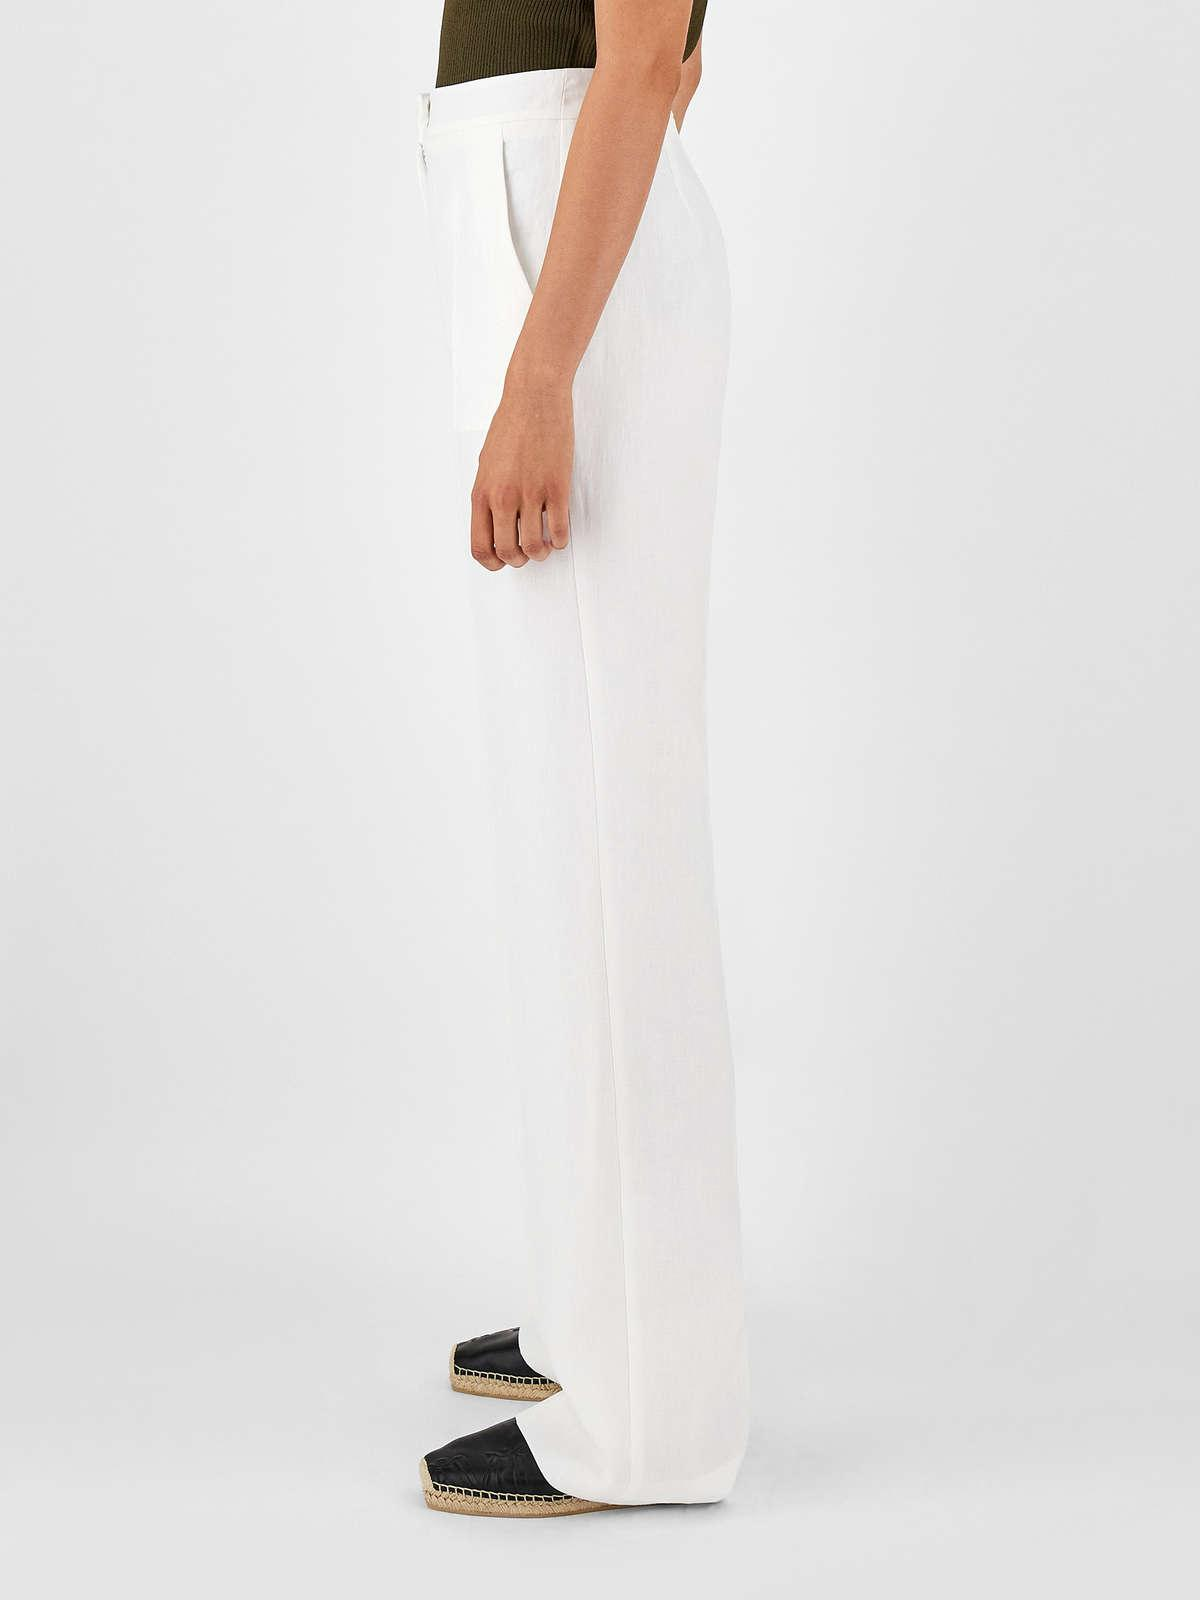 Womens Max Mara Trousers And Jeans | Linen Trousers Optical White